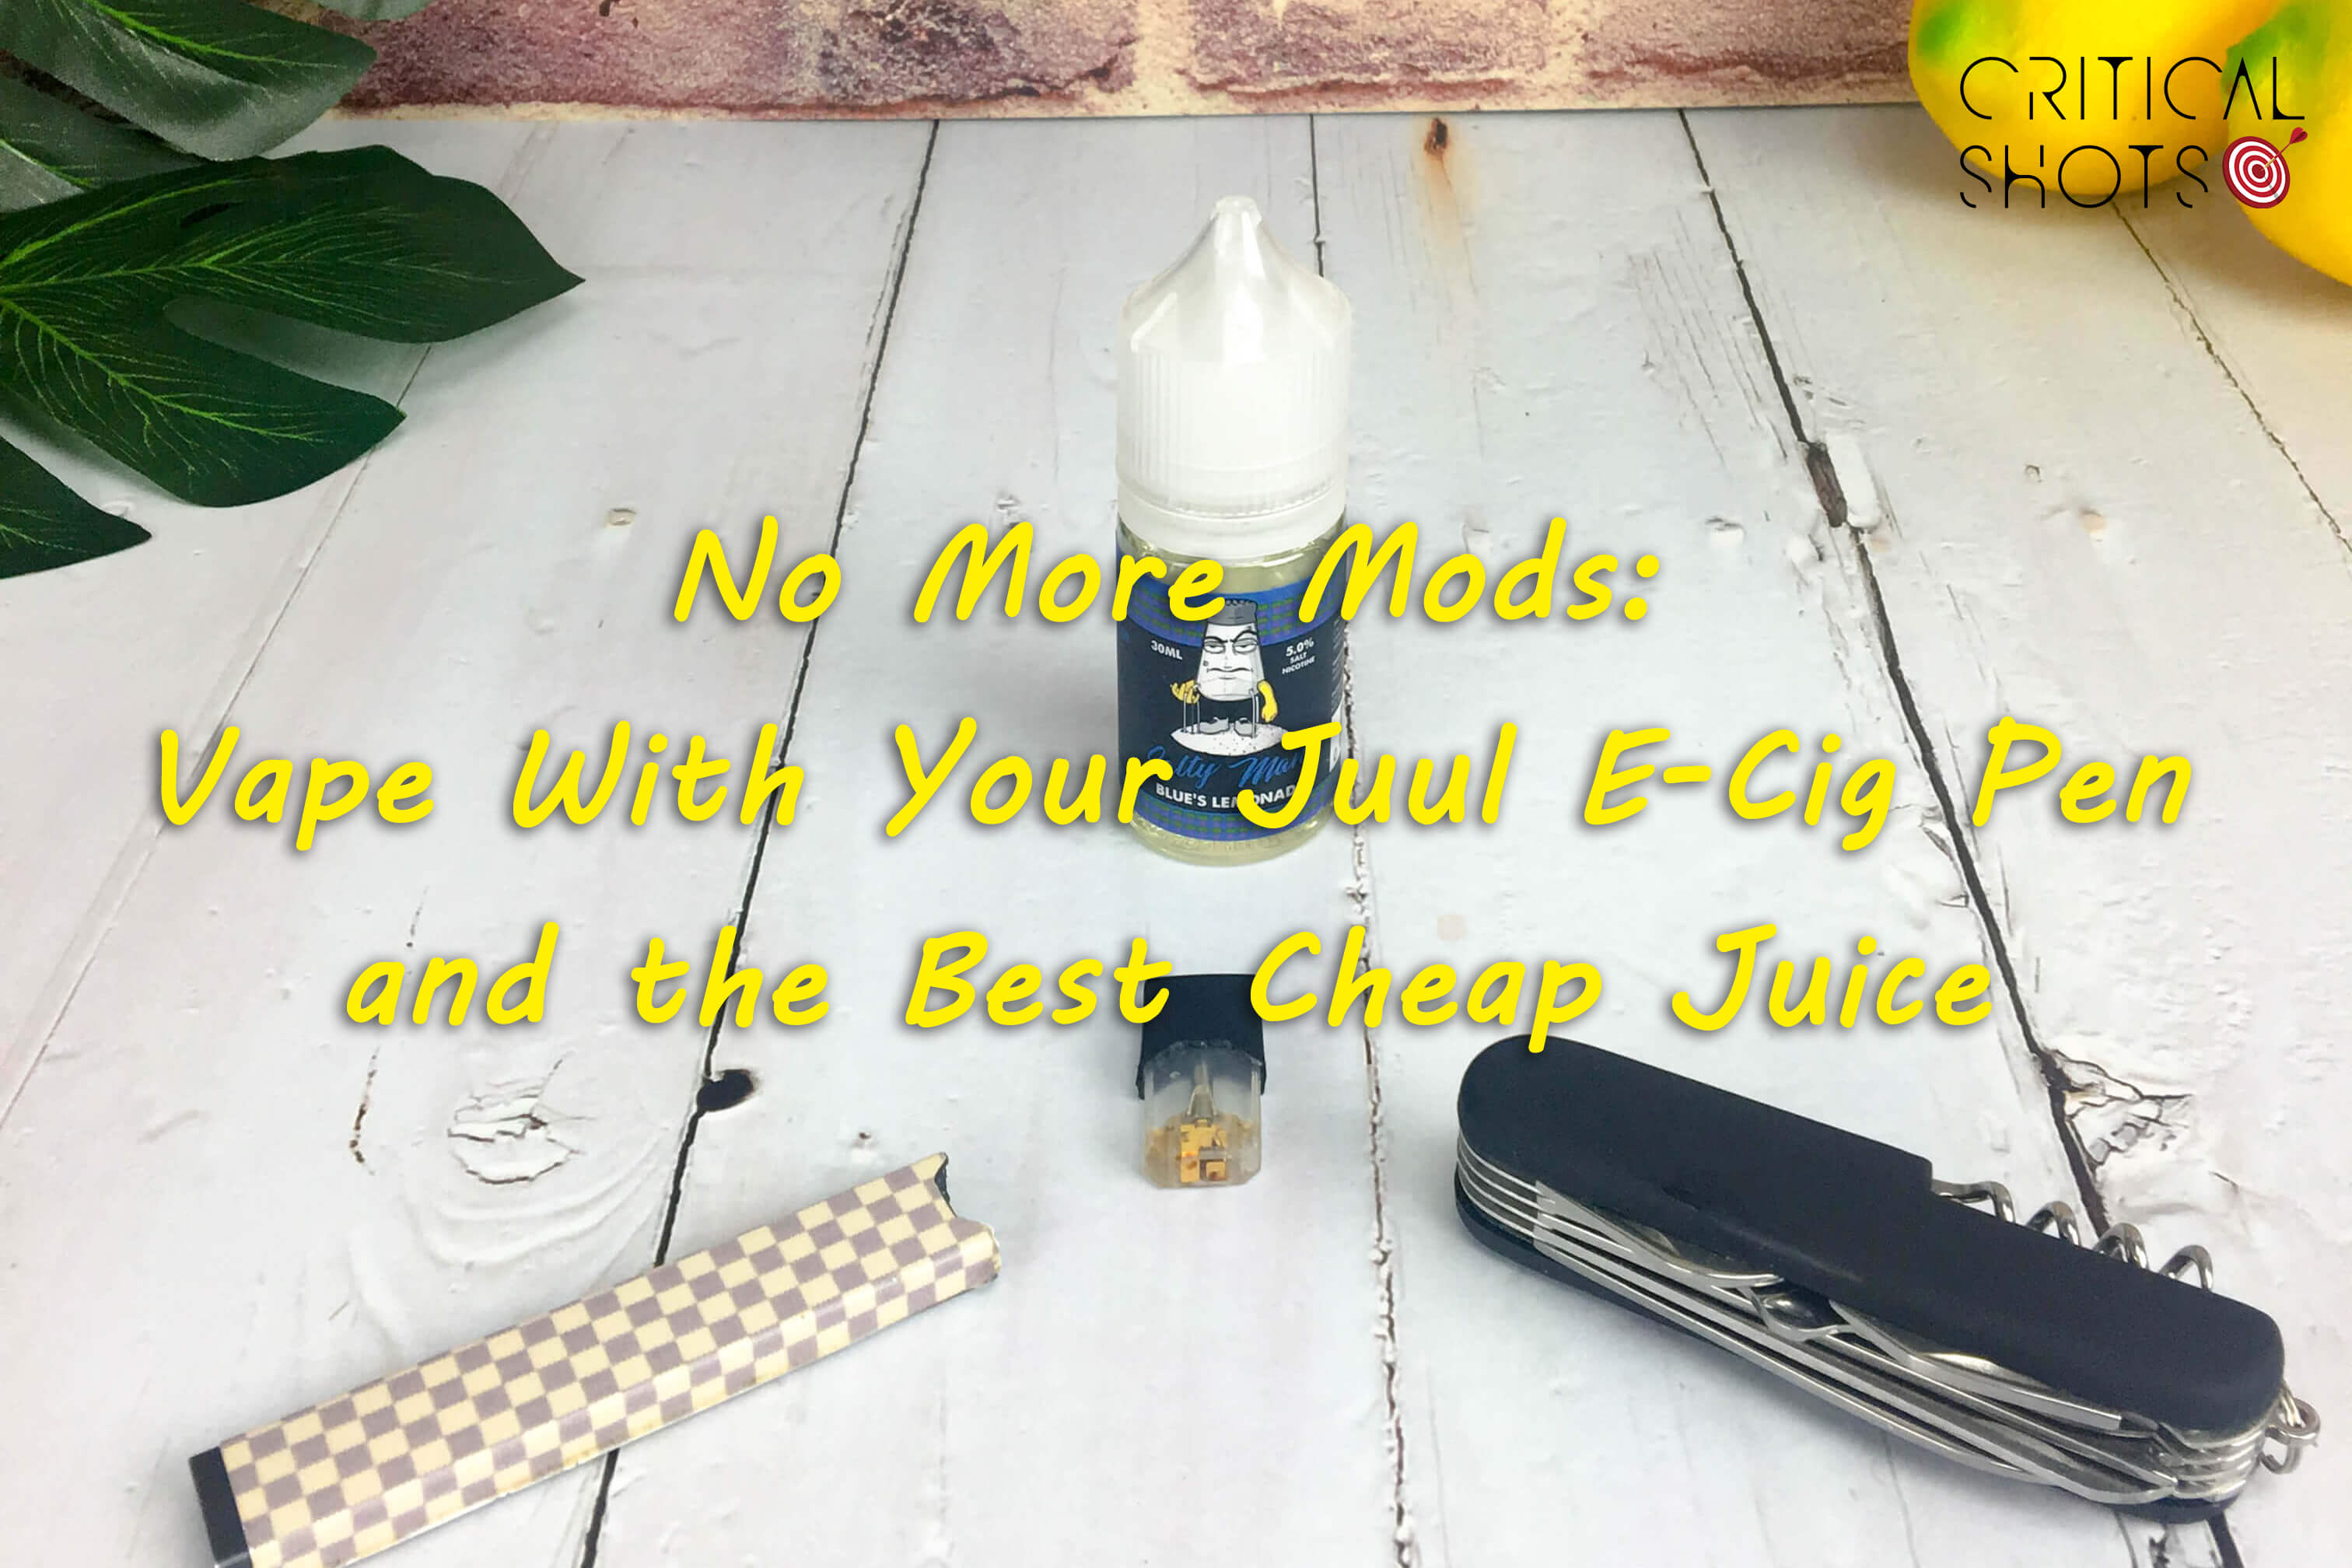 No More Mods: Vape With Your Juul E Cig Pen and the Best